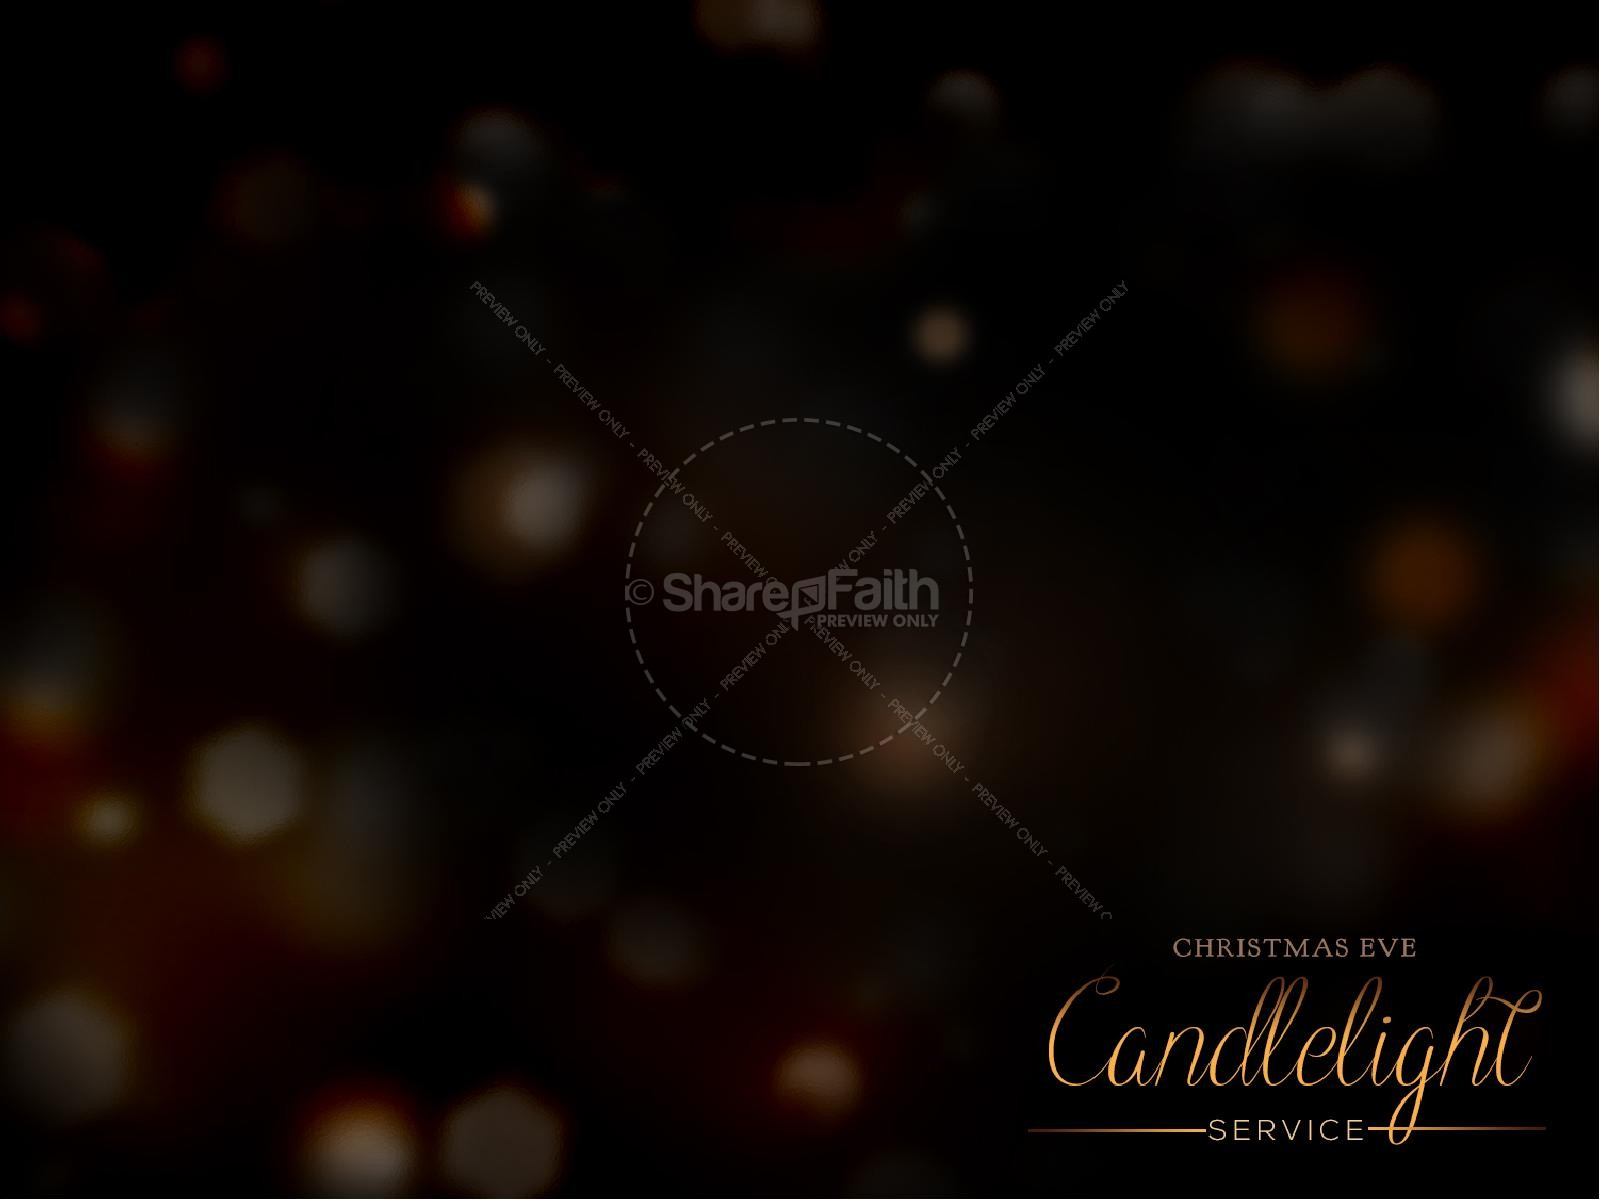 Candlelight Service Religious PowerPoint | slide 2